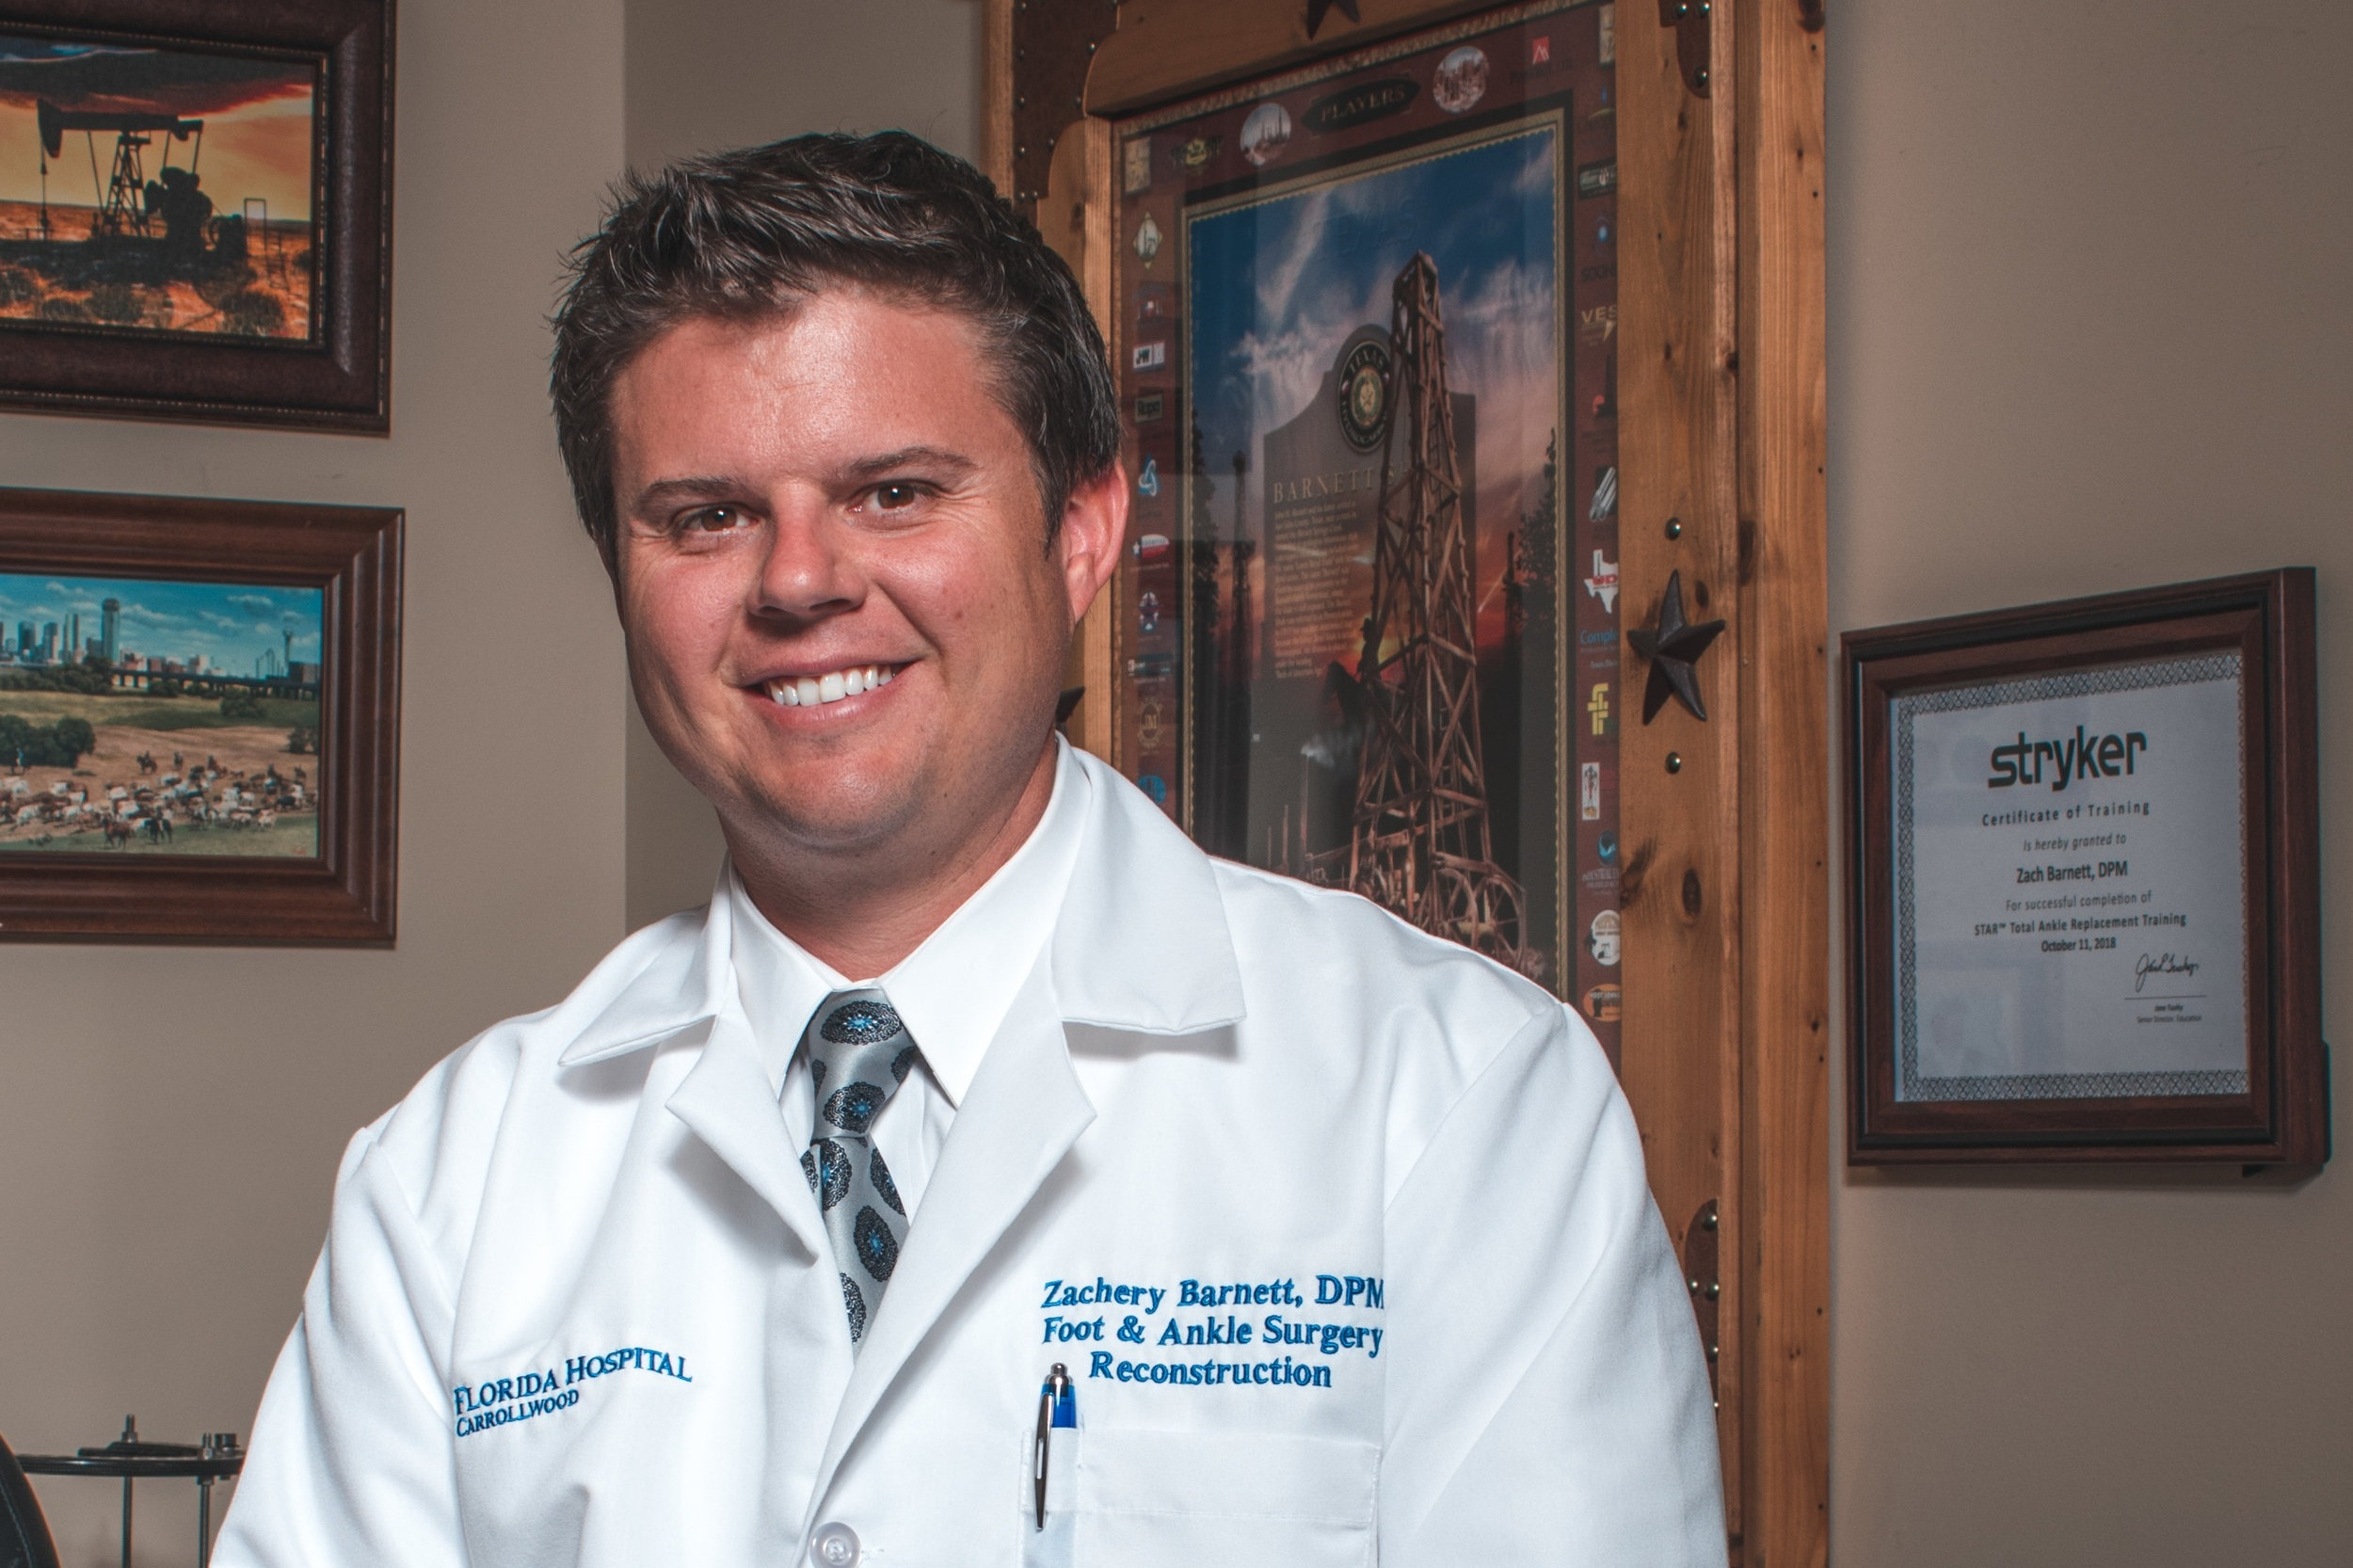 podiatrist, foot surgeon dr. zachery barnett tamp